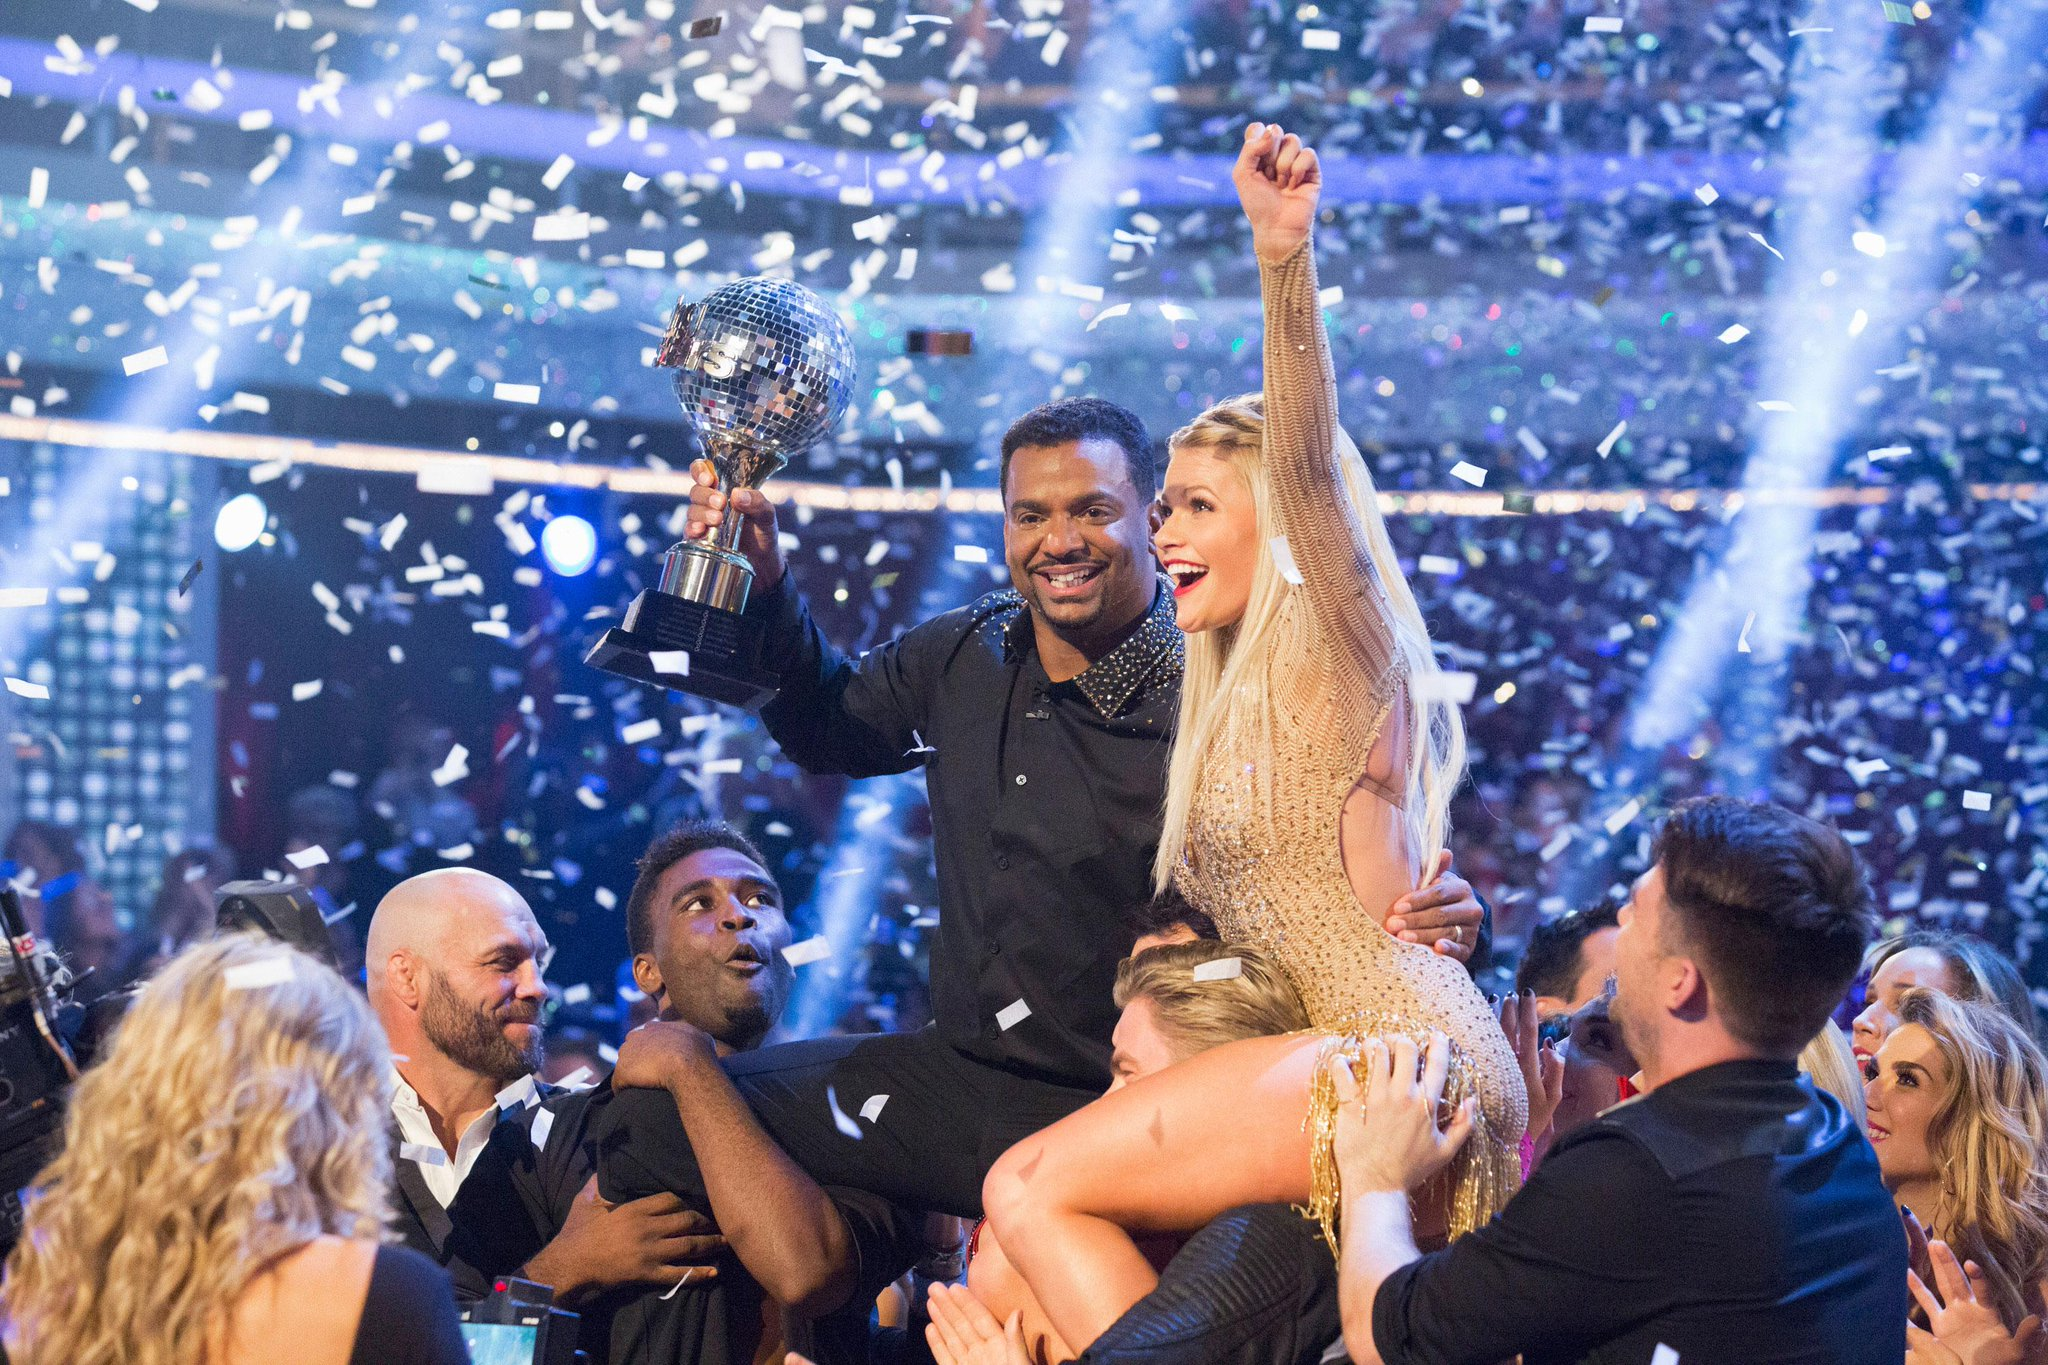 YES! Alfonso Ribeiro has won #DWTS like the dance stallion he truly is  http://t.co/nde18at3Hm http://t.co/Mp08nkpbyP